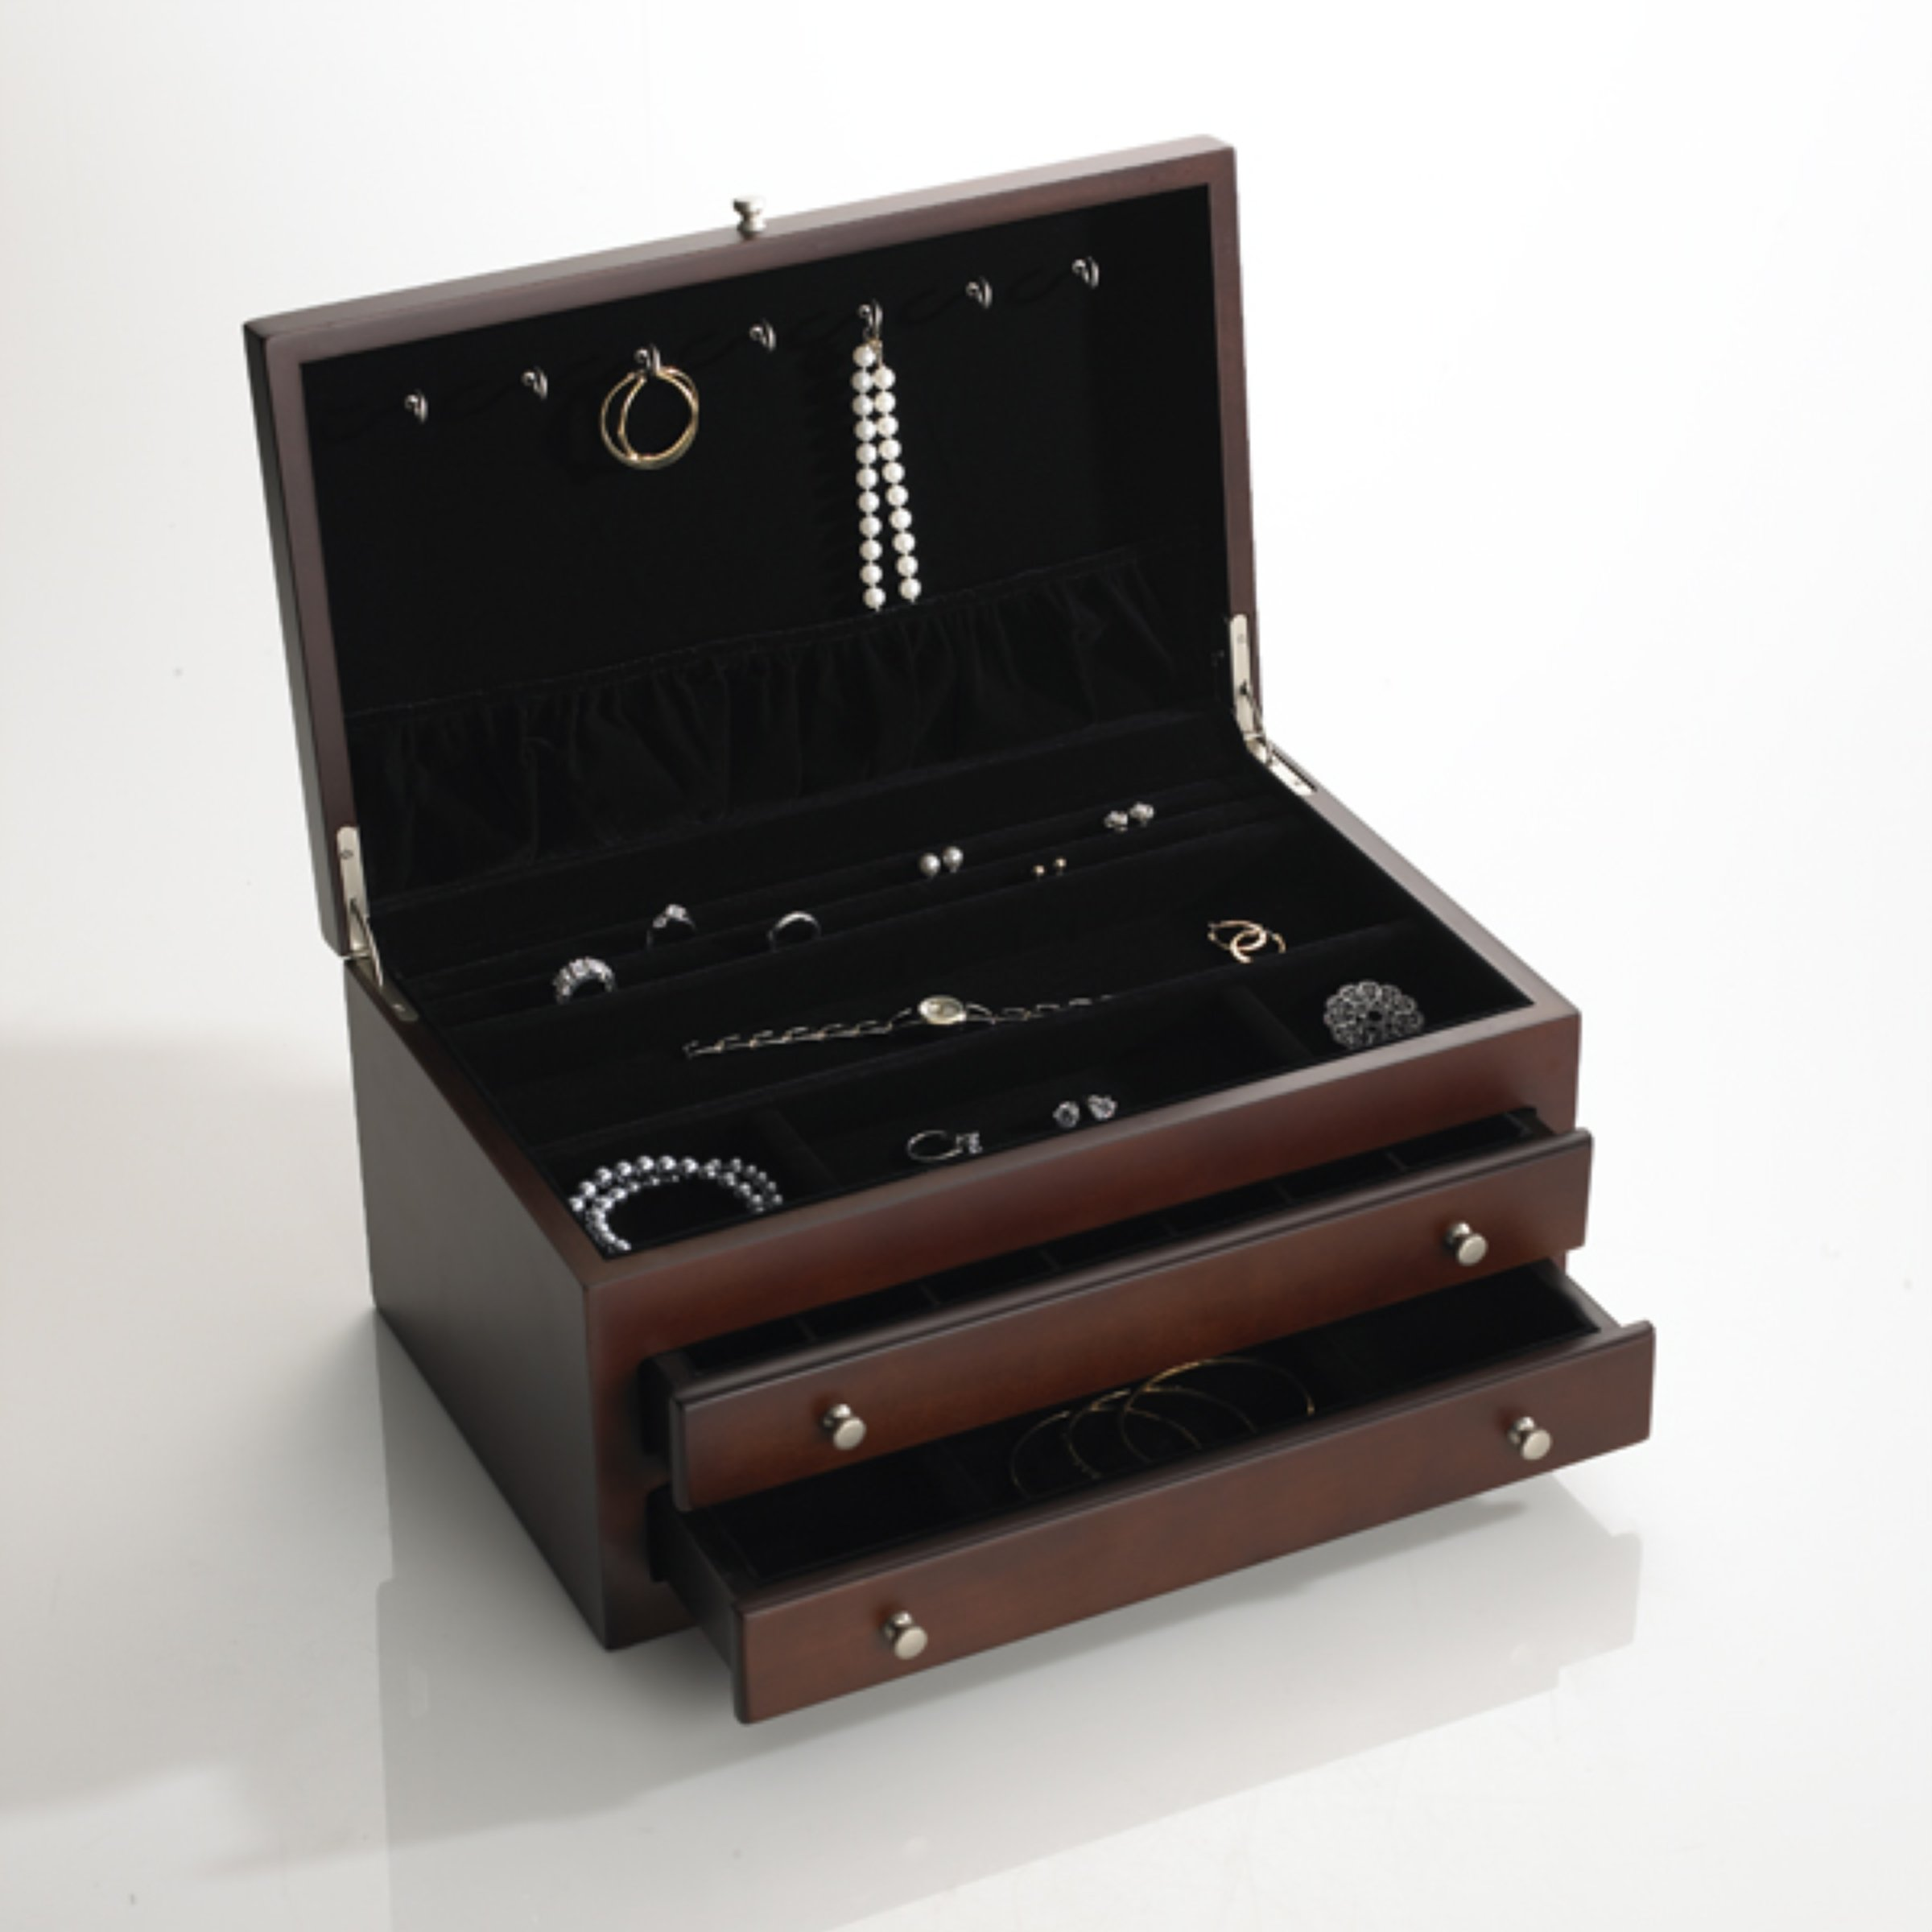 Wallace Large Jewelry Chest with 2 Drawers Dark Walnut by Wallace (Image #2)